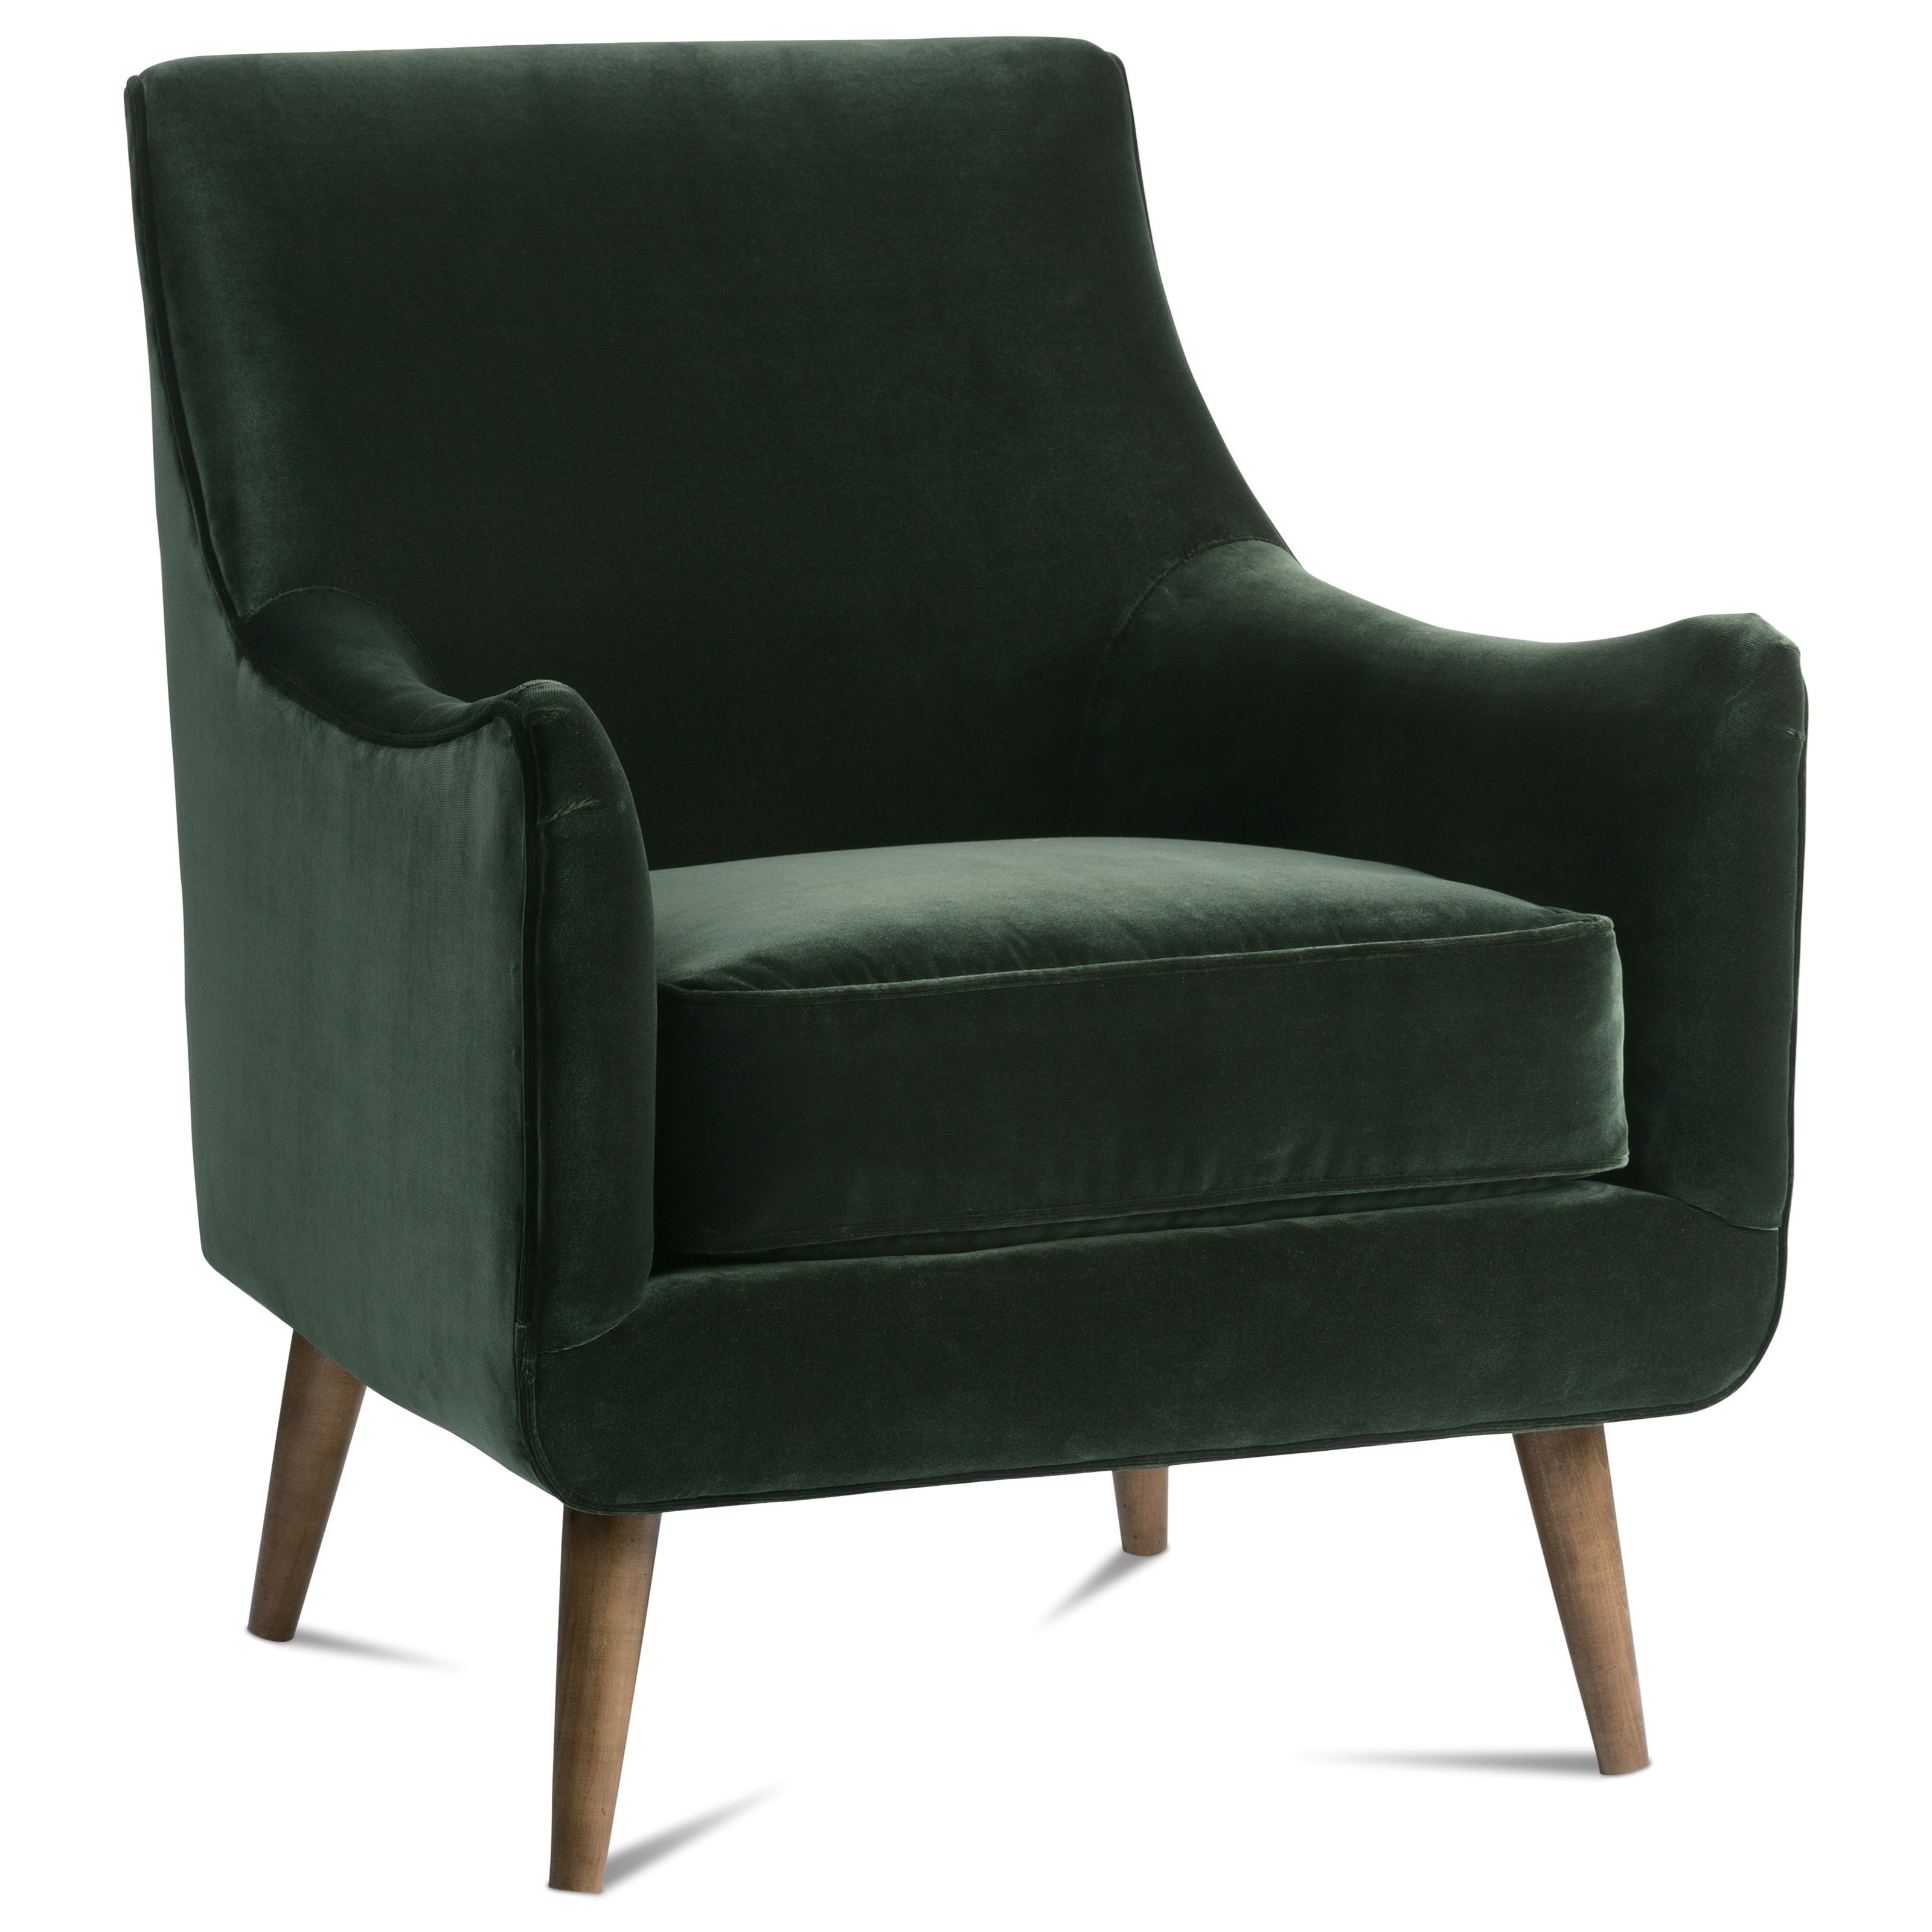 Chairs and Accents Nolan Chair by Rowe at Baer's Furniture